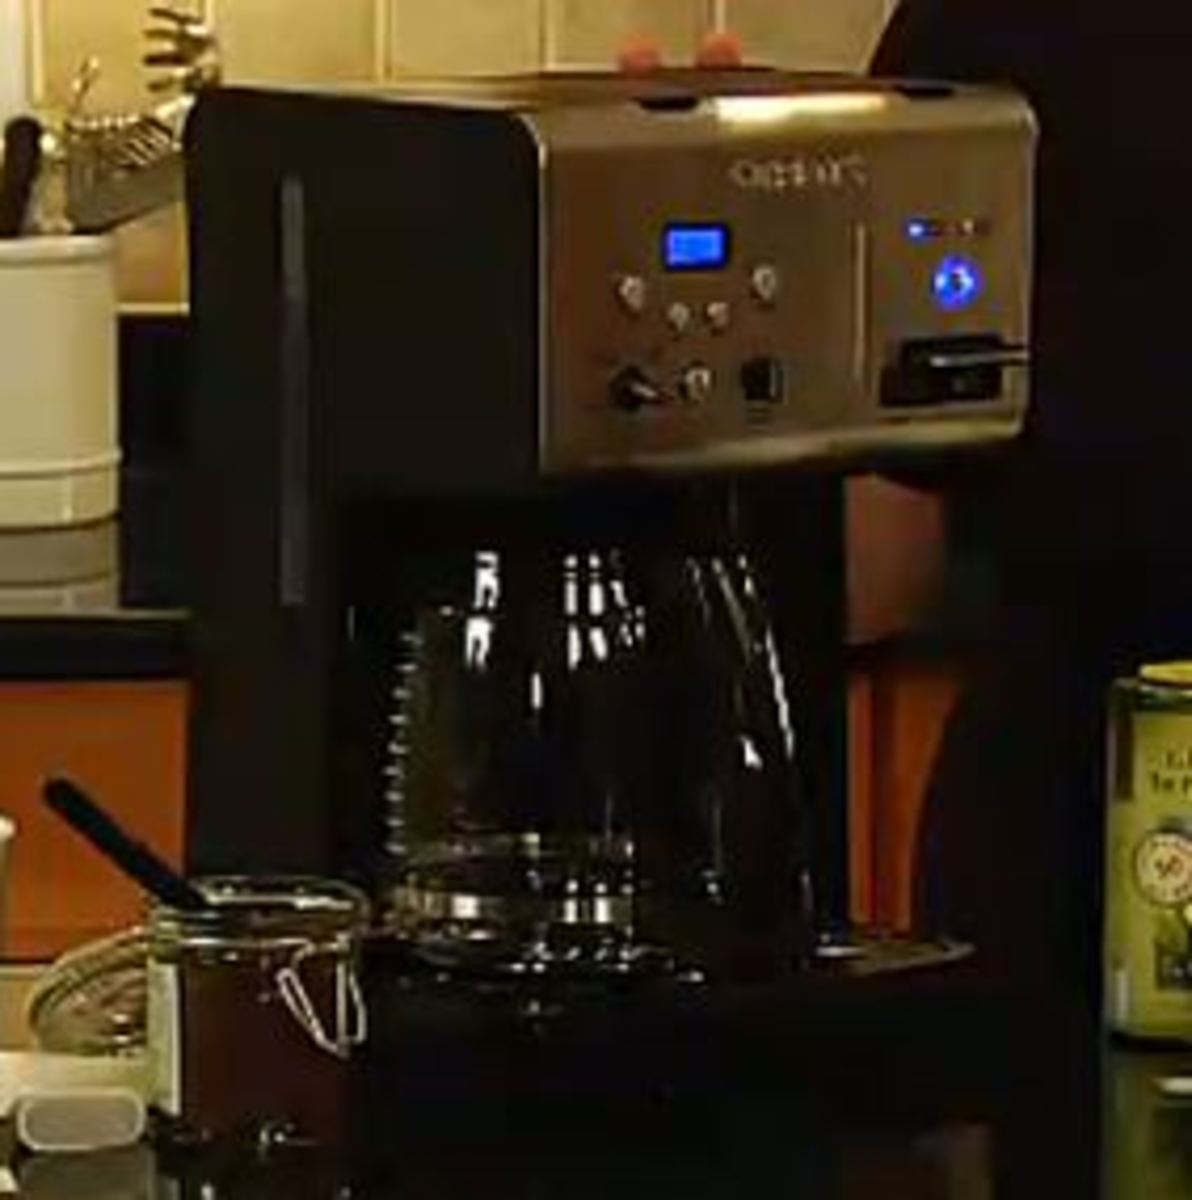 Cuisinart programmable coffee maker